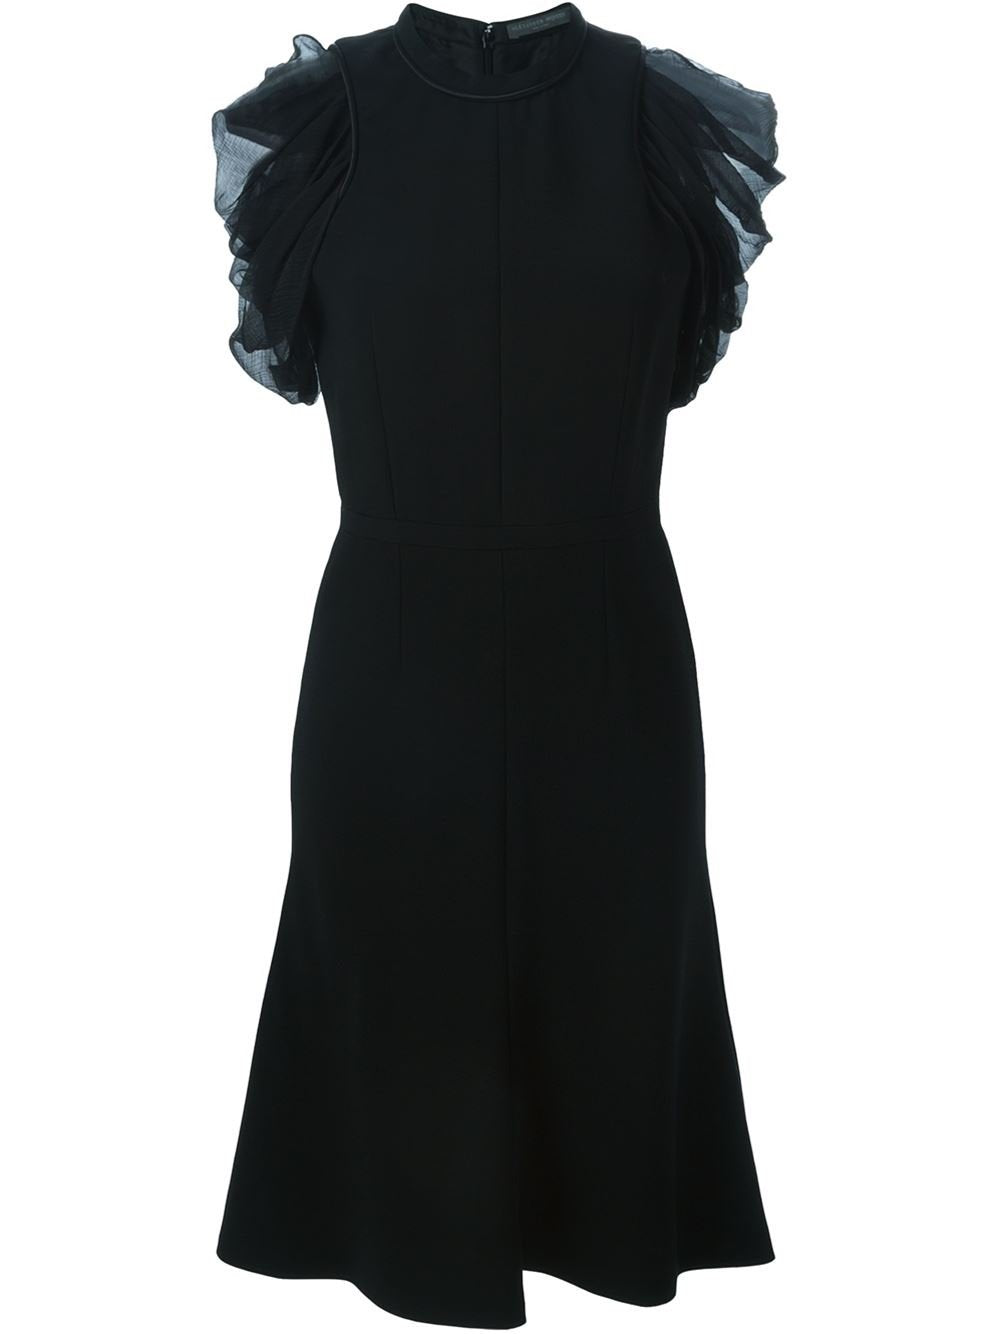 Alexander McQueen Black Draped Sleeve A-line Dress 42 - Vancelette Global Art Acquisitions